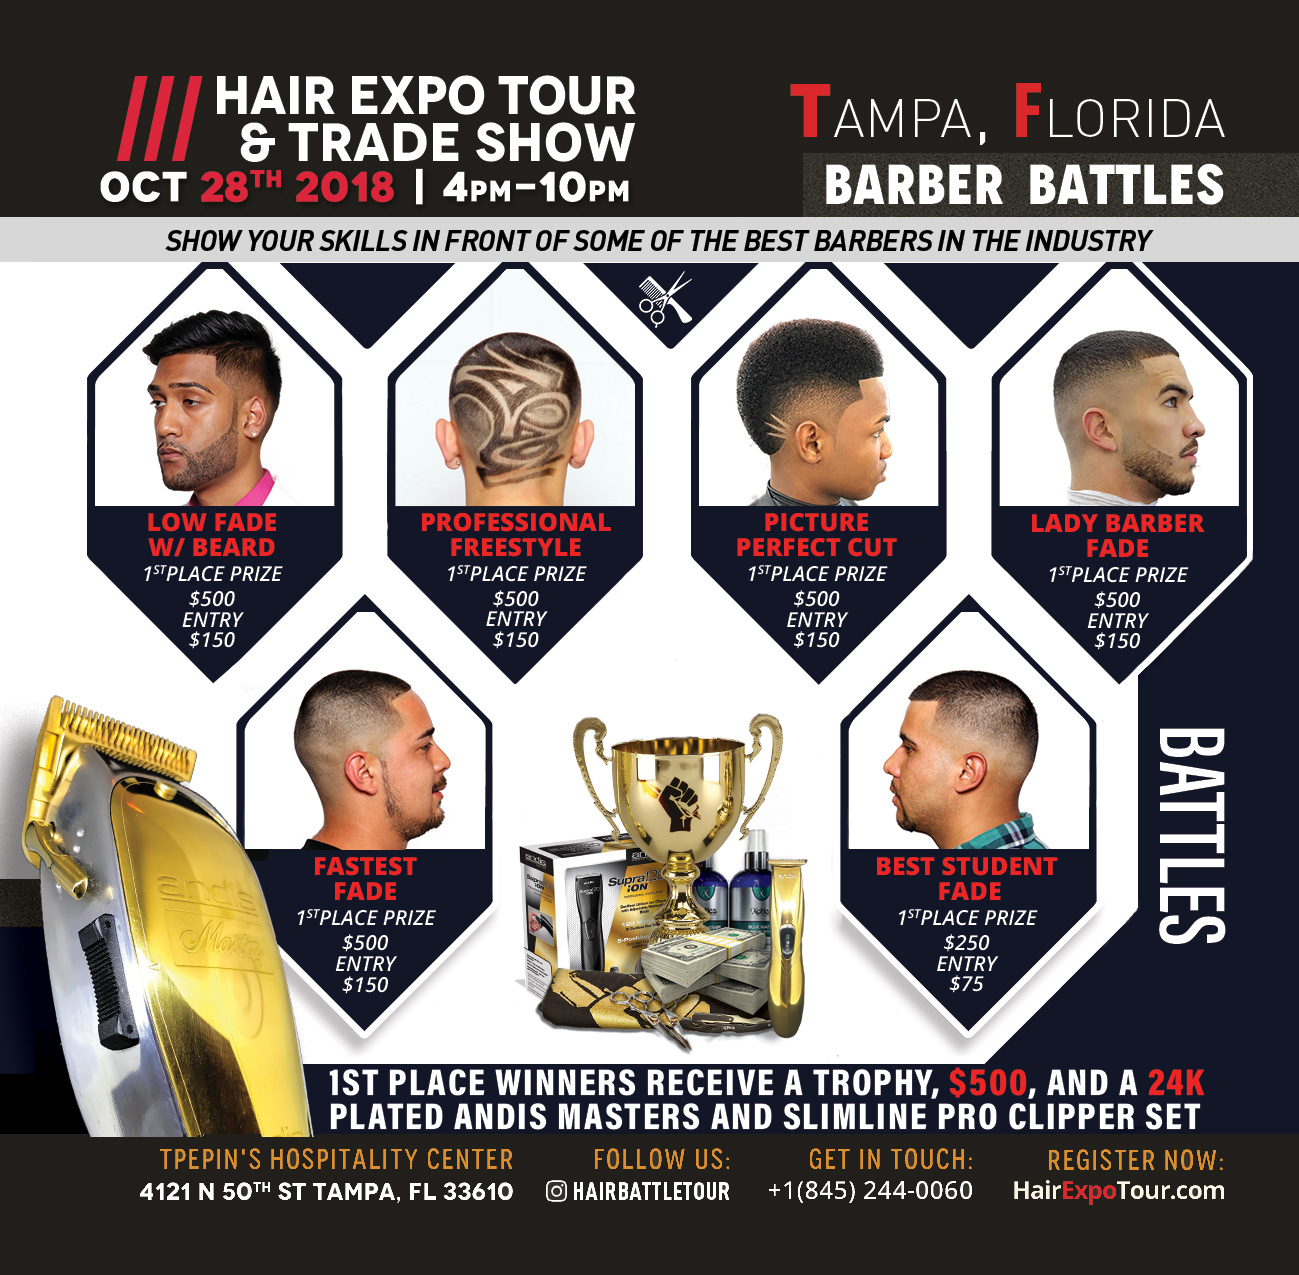 TAMPA HAIR BATTLE TOUR AND TRADE SHOW OCTOBER 28, 2018 - 28